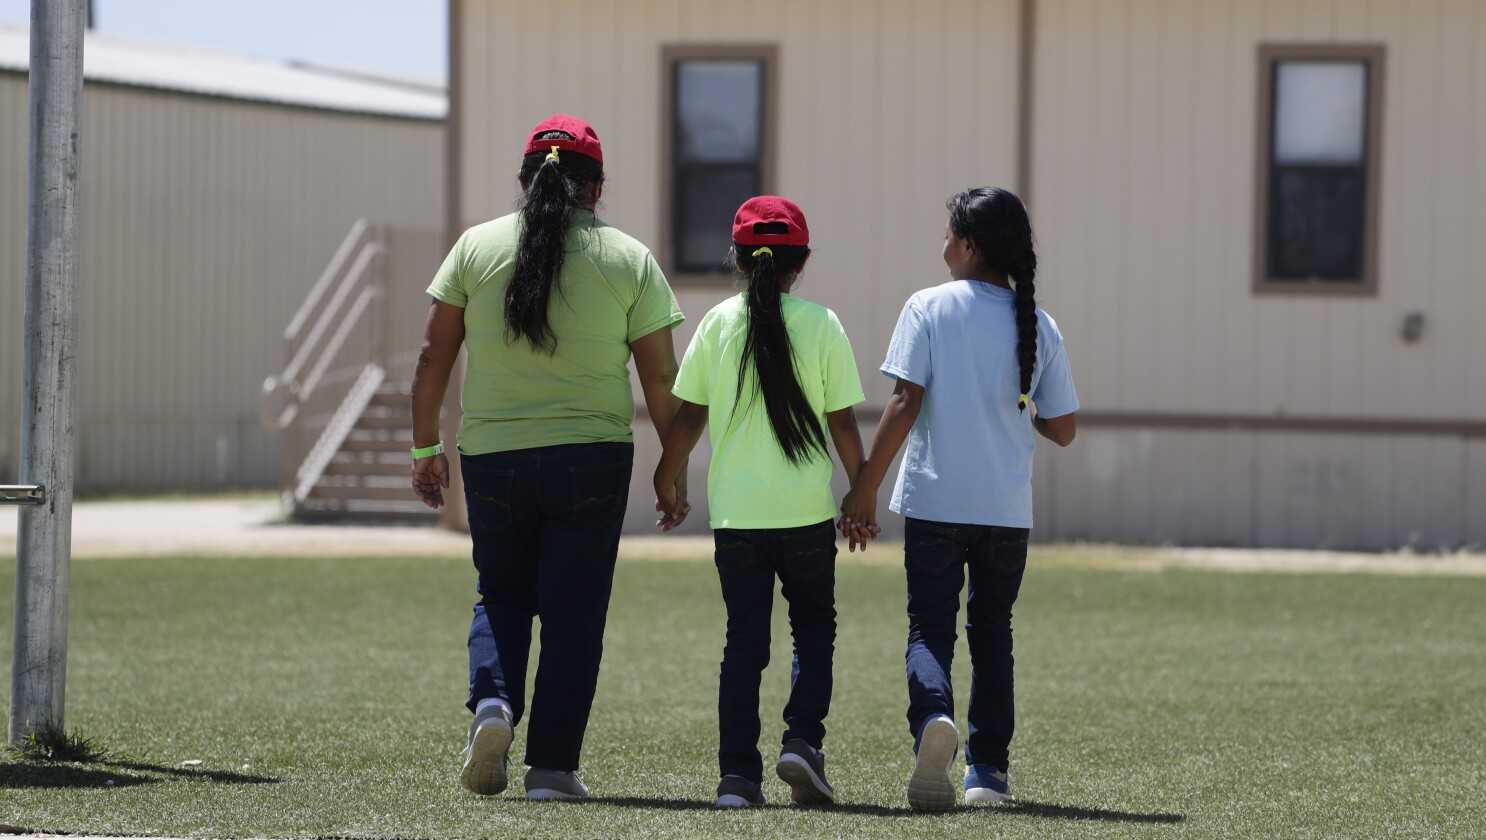 ICE detention centers preparing for longer average stays by migrant families